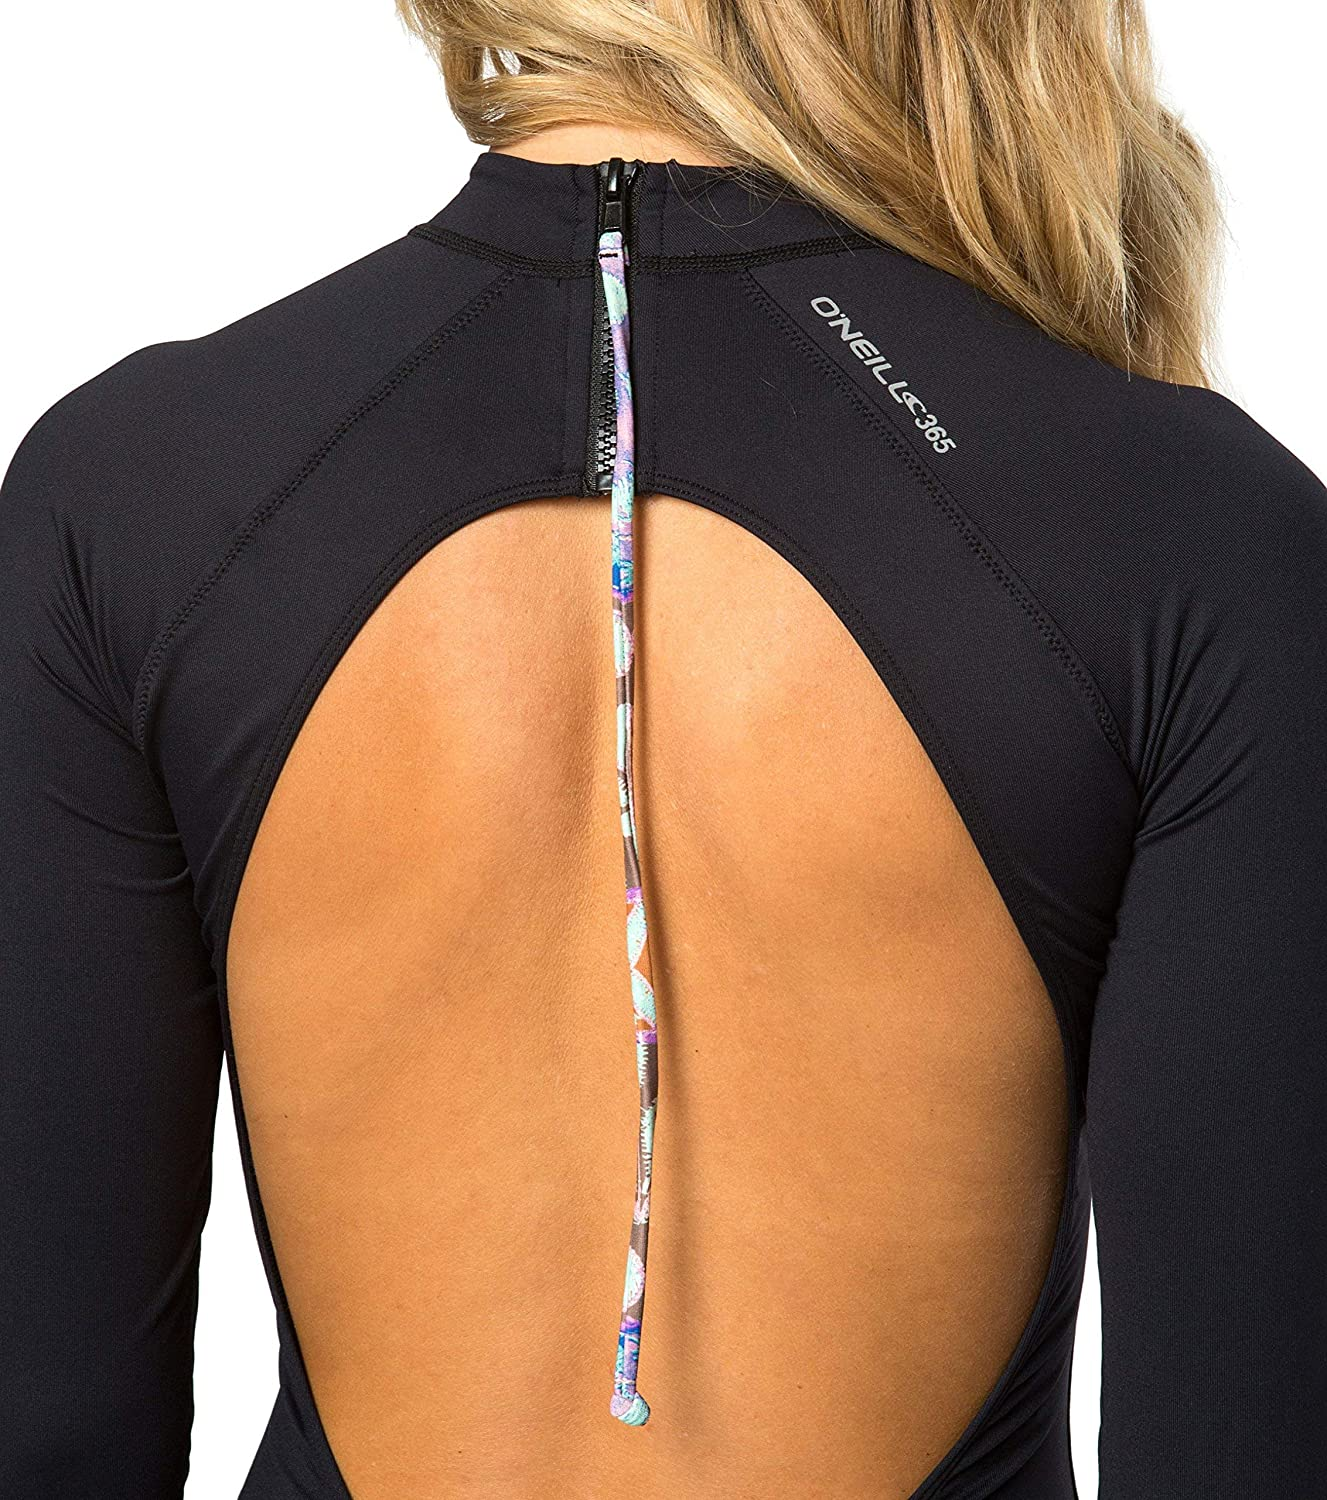 ONeill Womens 50 UV Protection Surf Suit Rash Guard